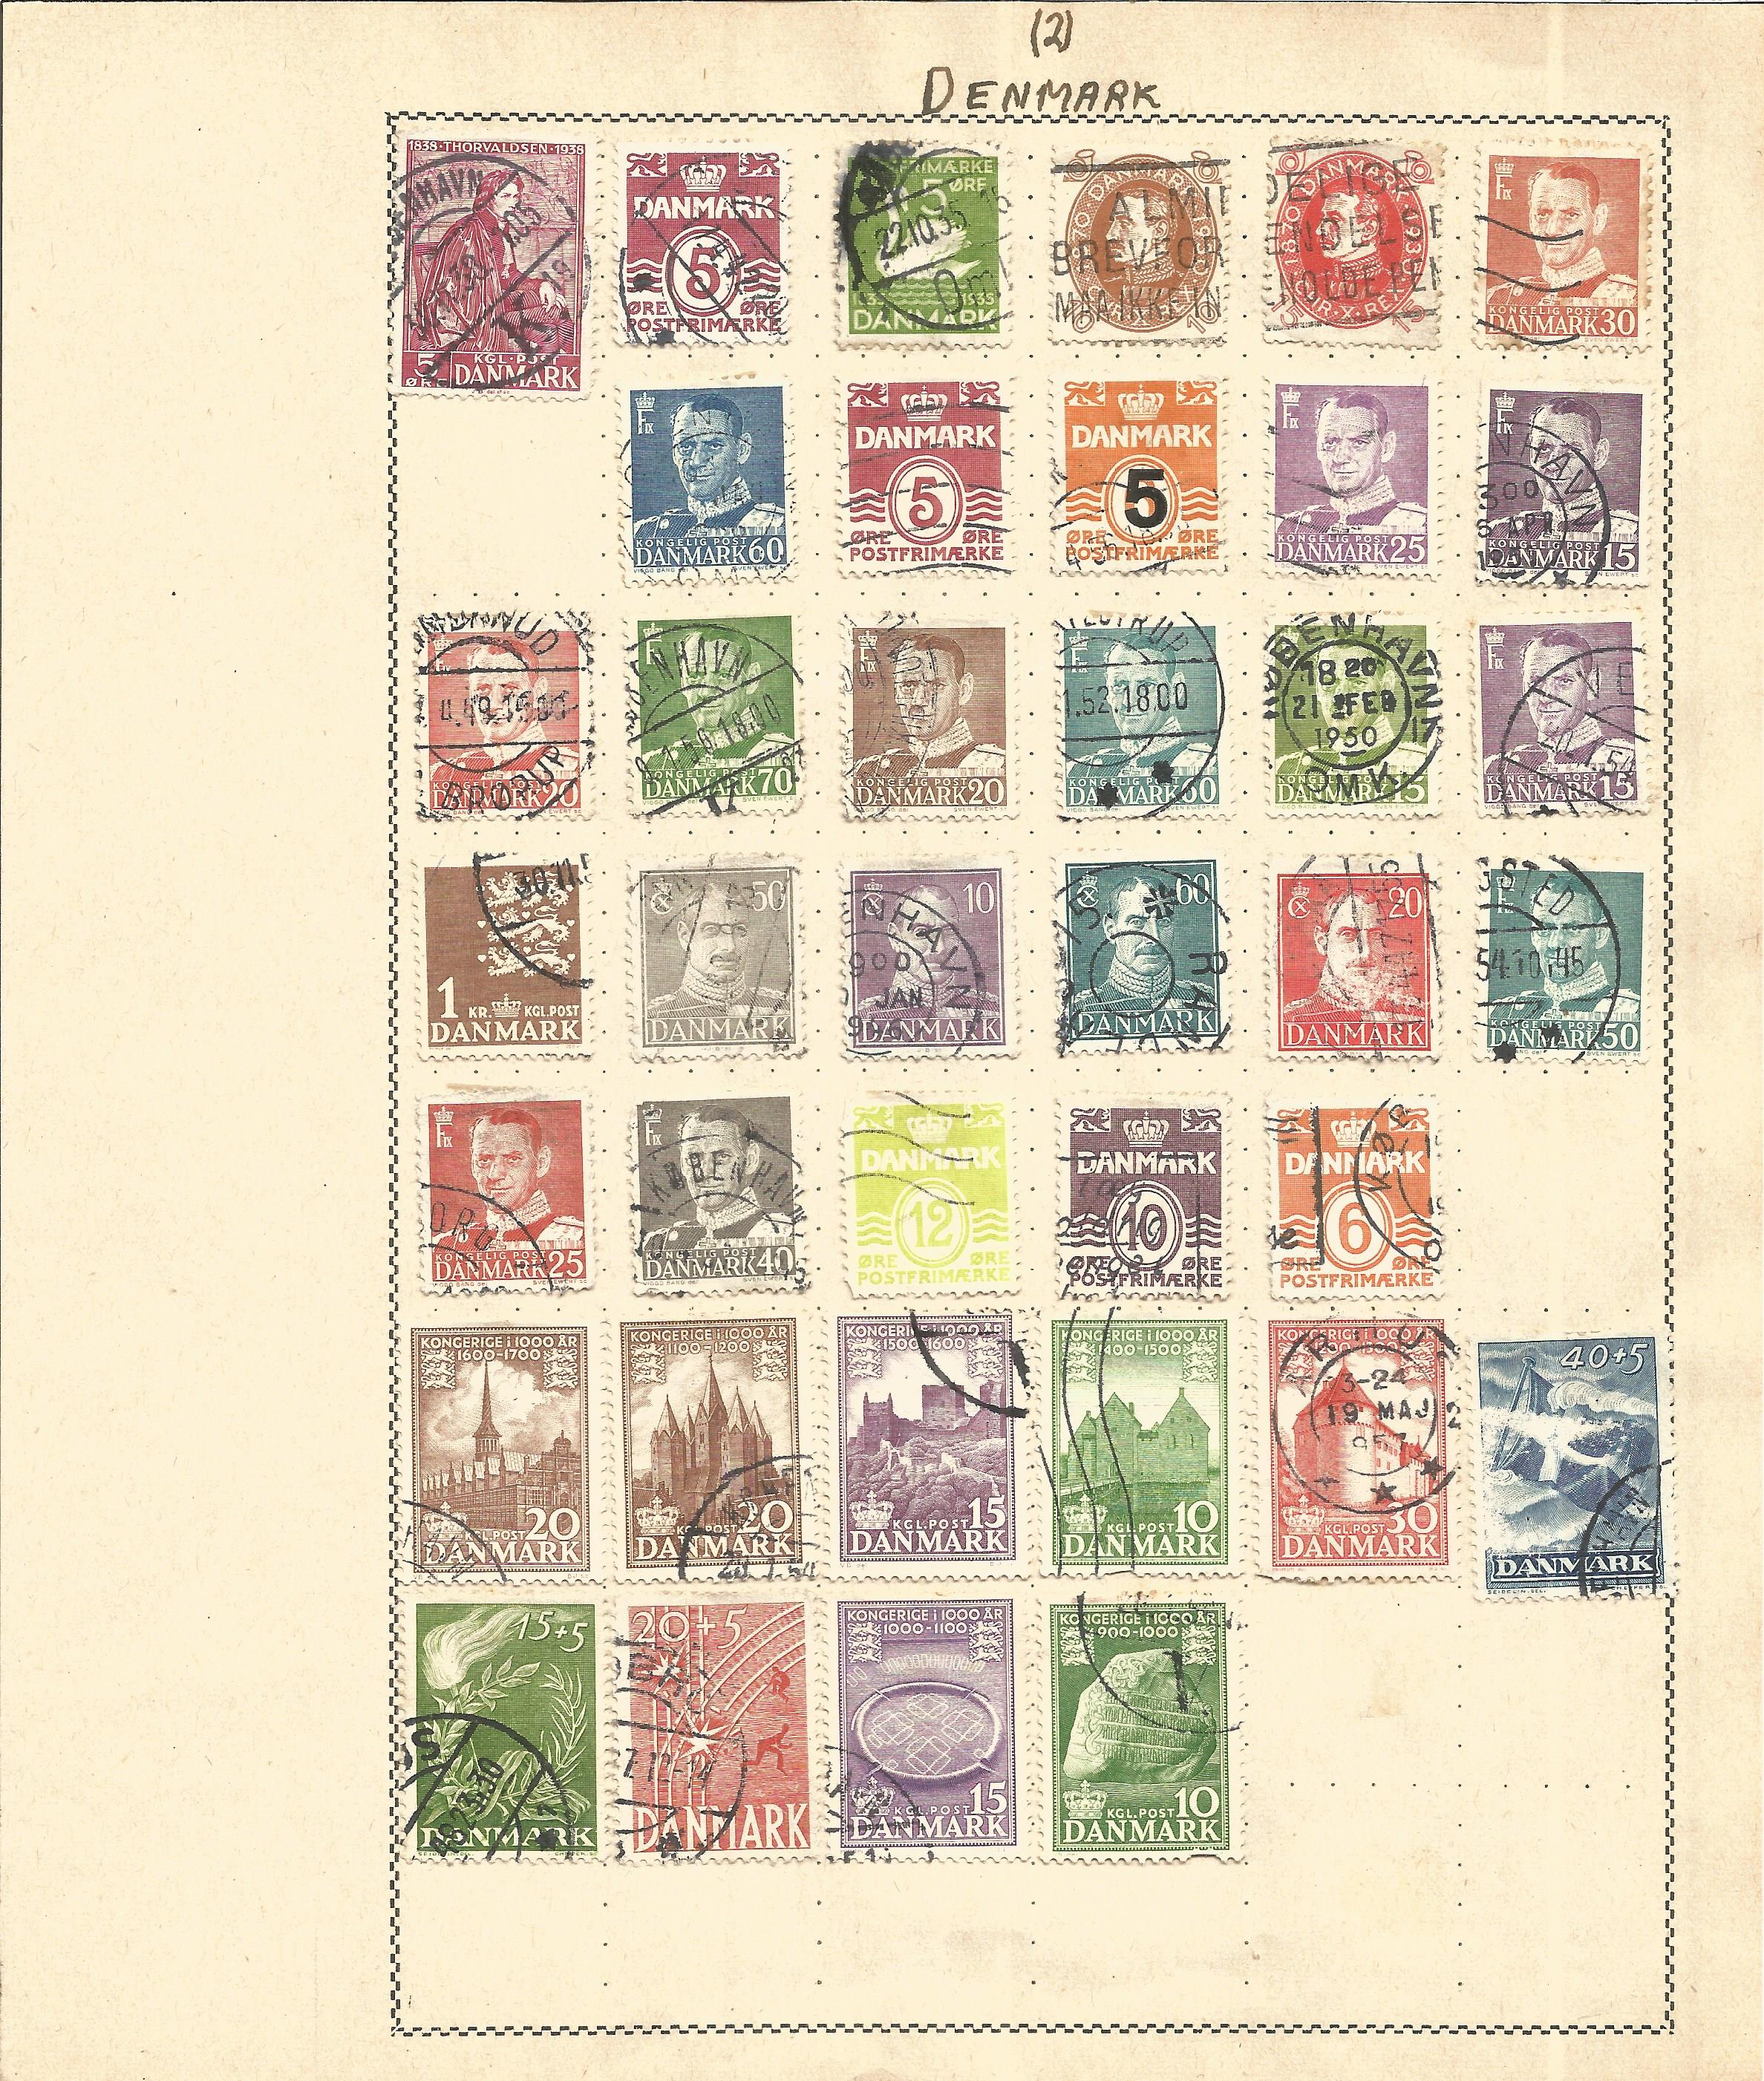 European Stamp collection 5 loose album leaves countries include Denmark and Norway. Good condition. - Image 2 of 3